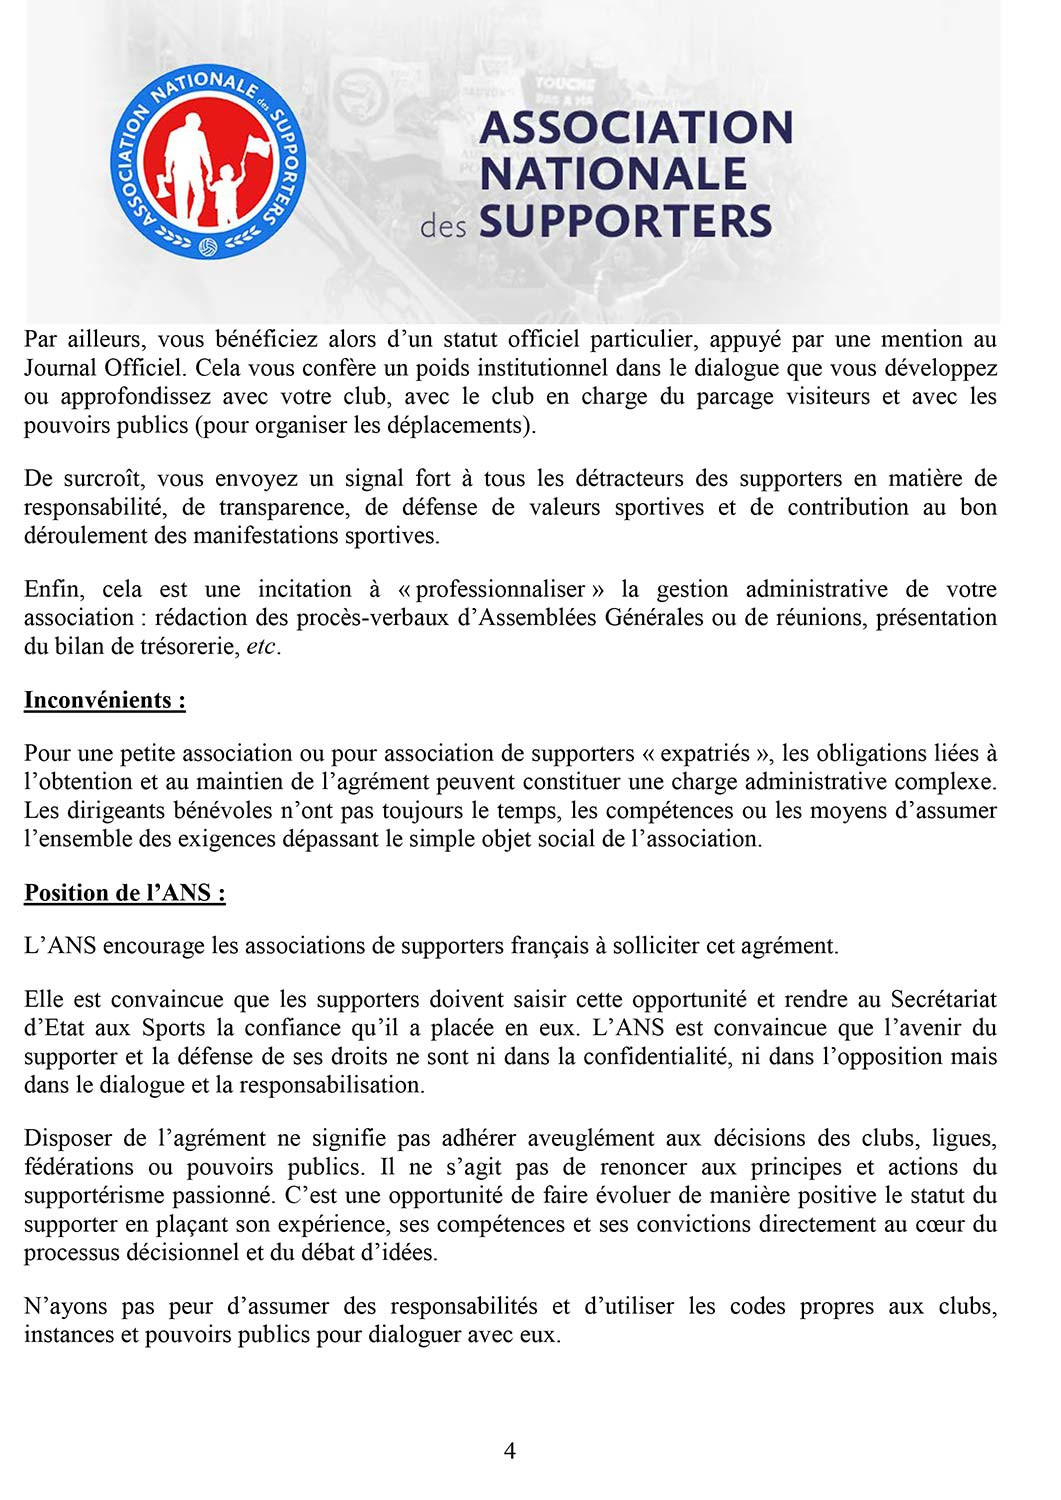 Agrement supporters ANS 4